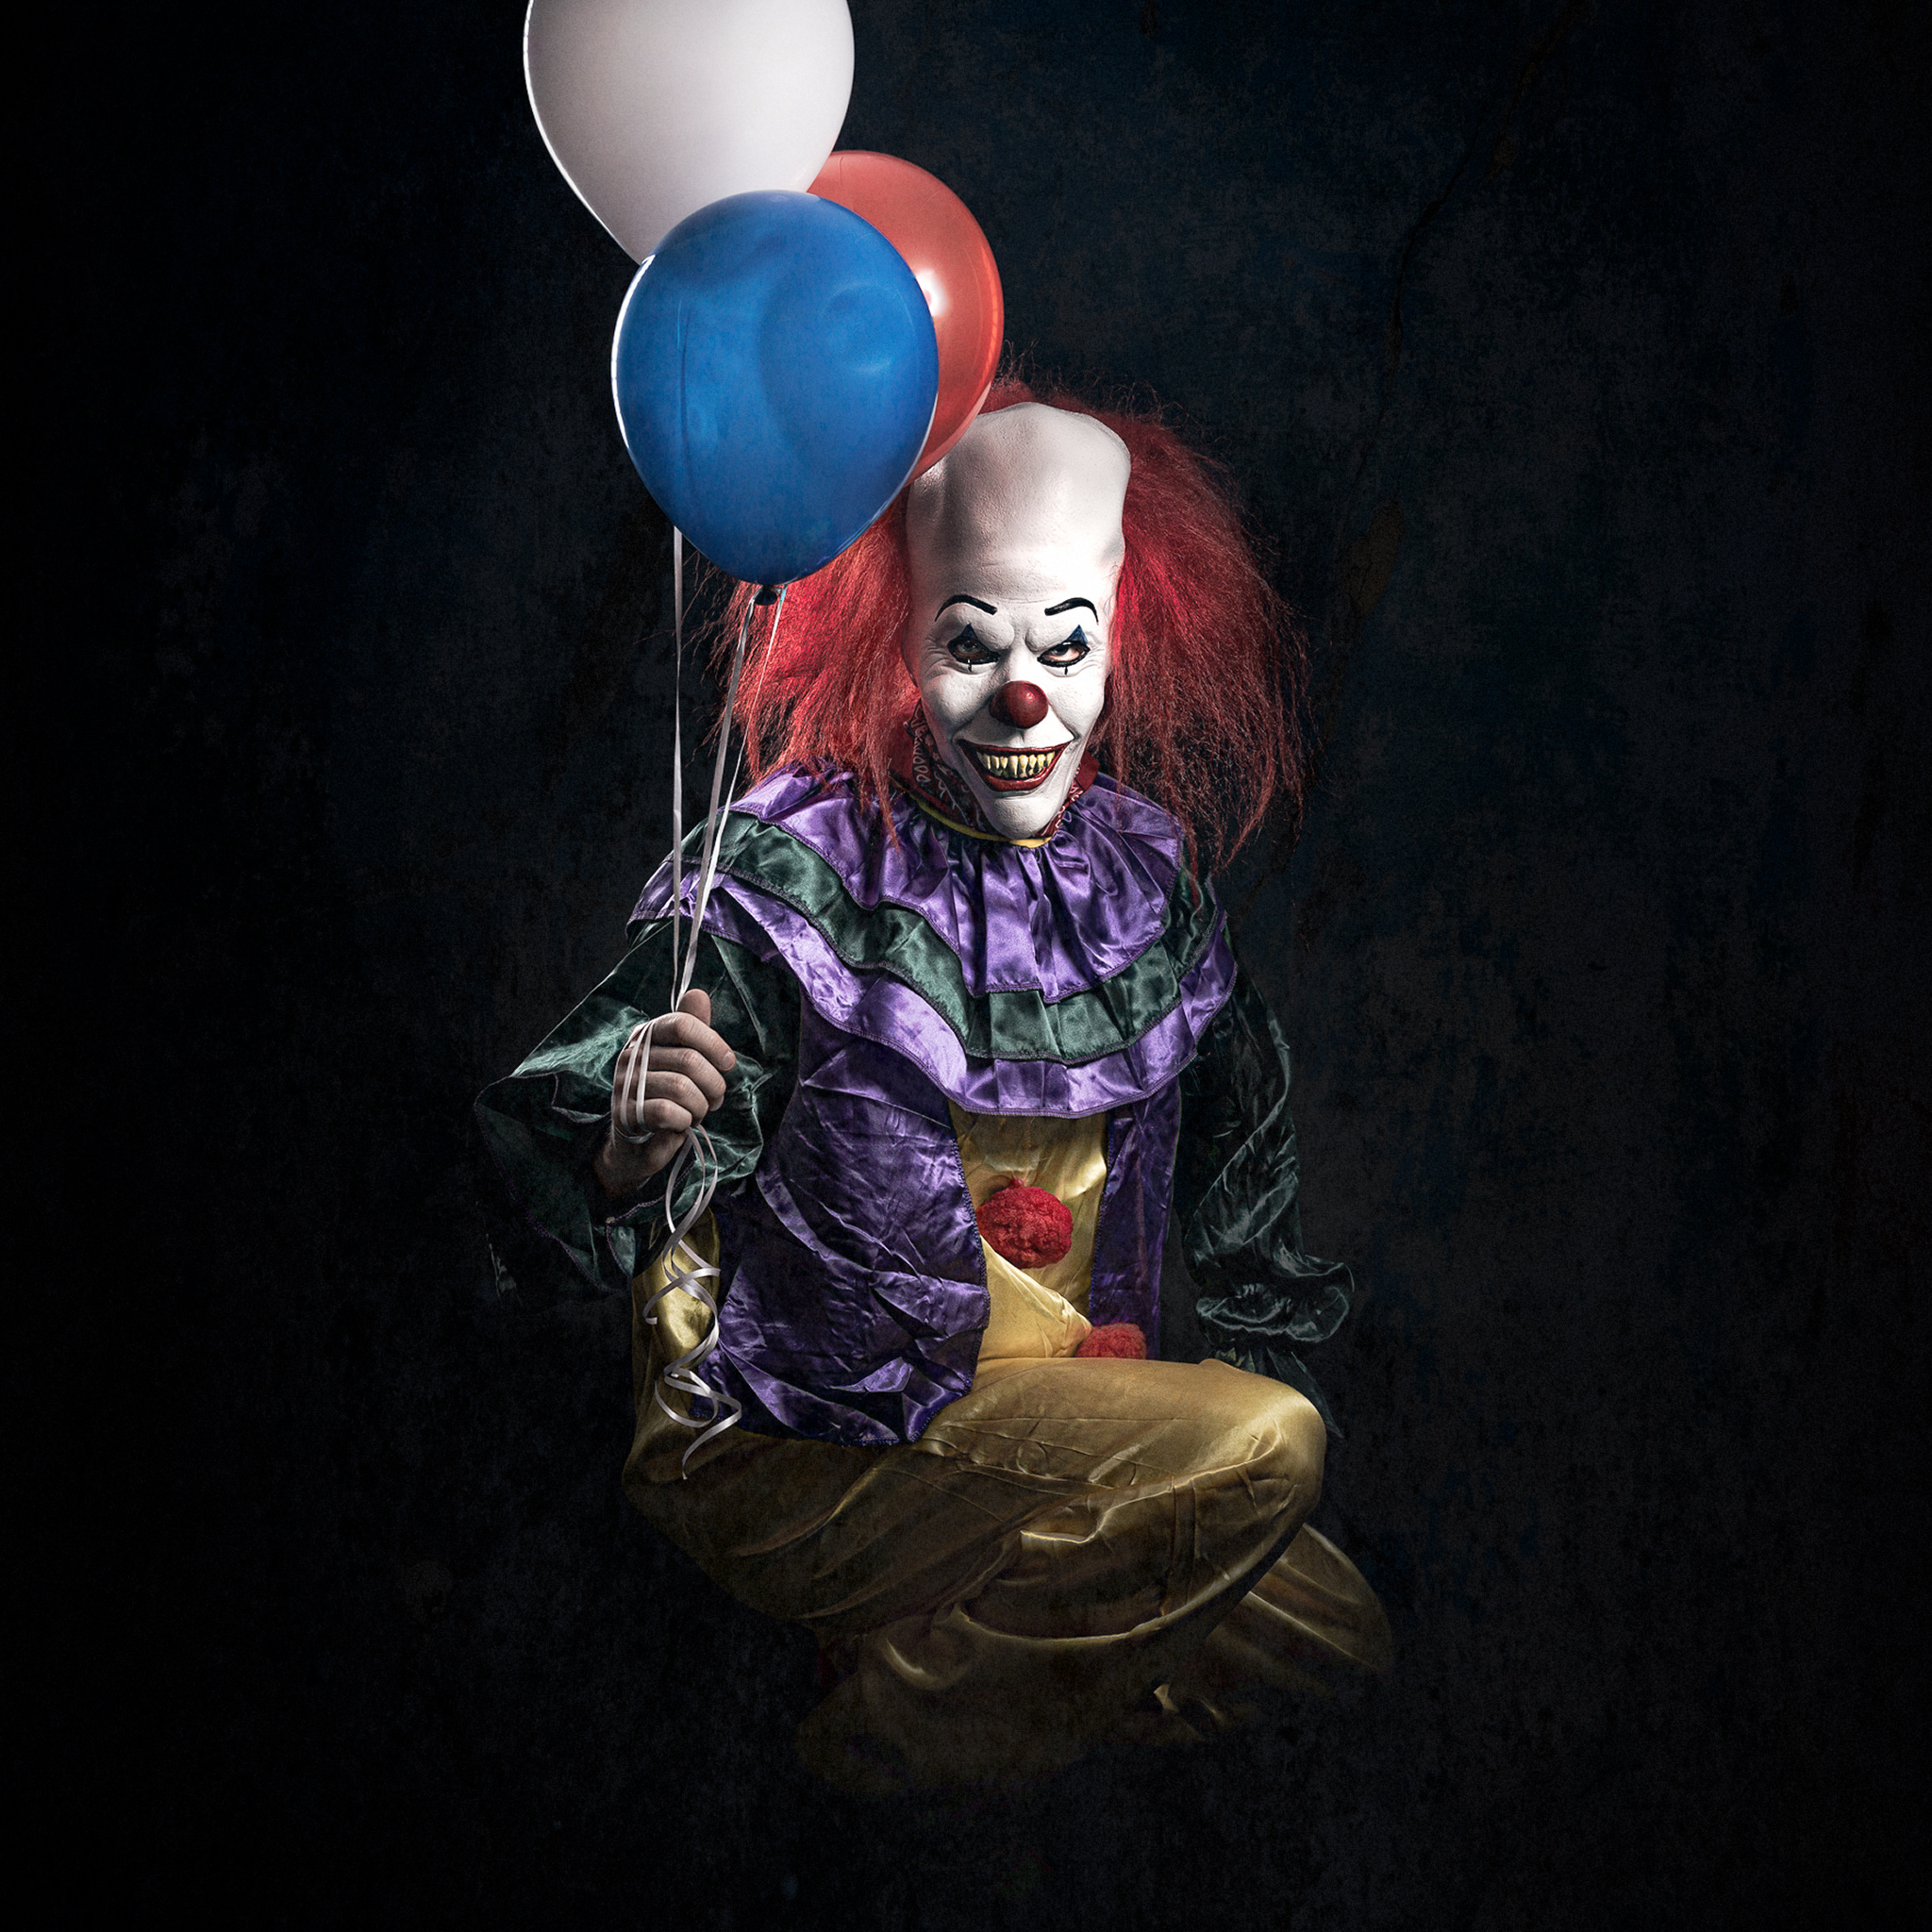 Wallfoto_Clown_160423_004